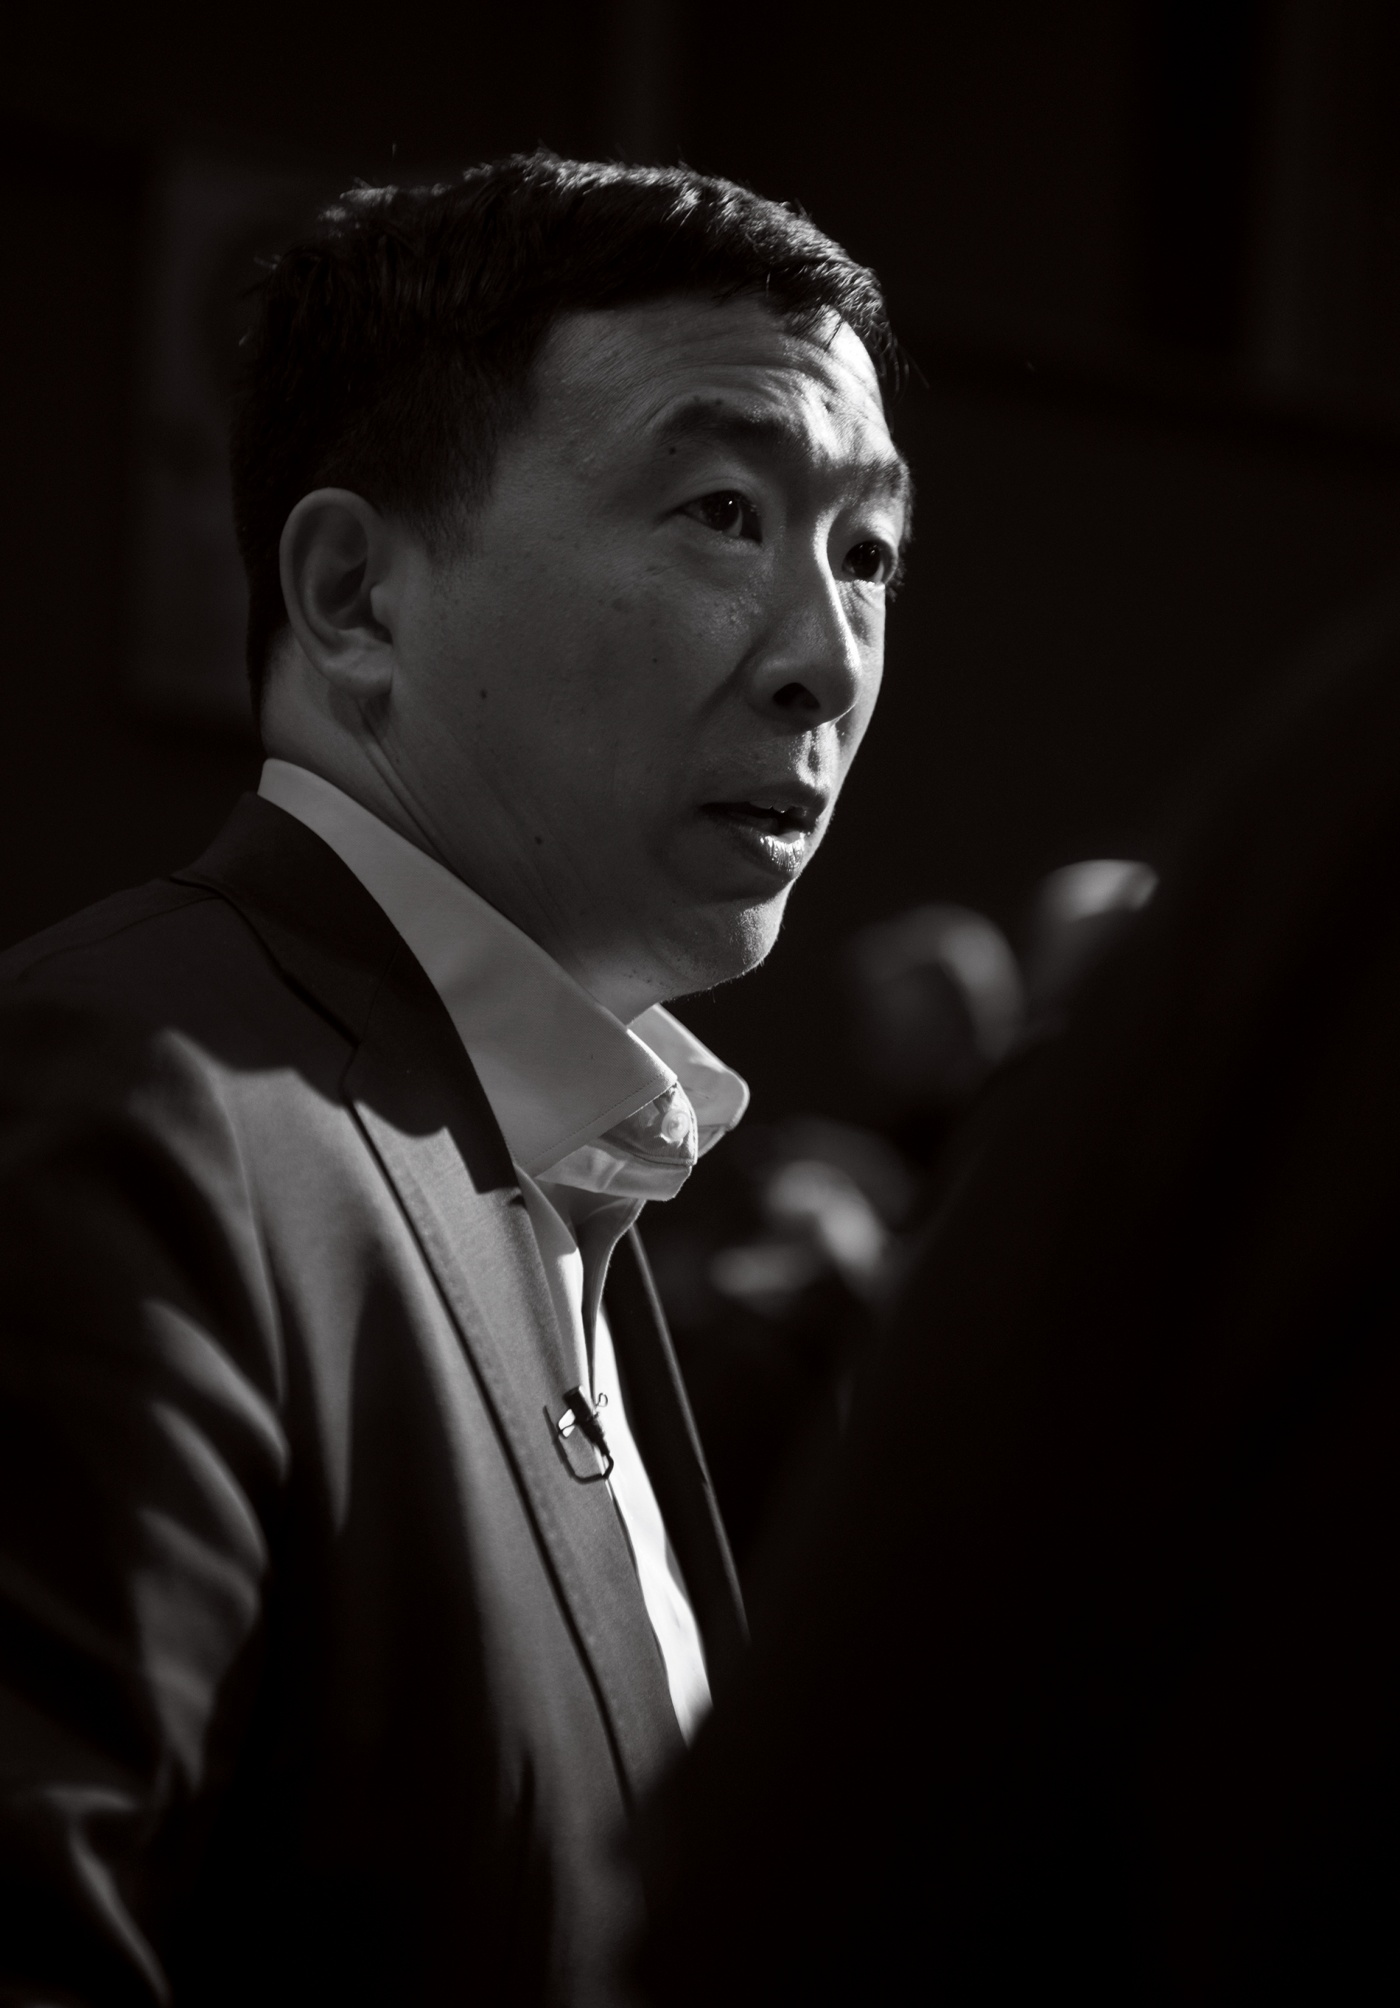 portrait of Andrew Yang